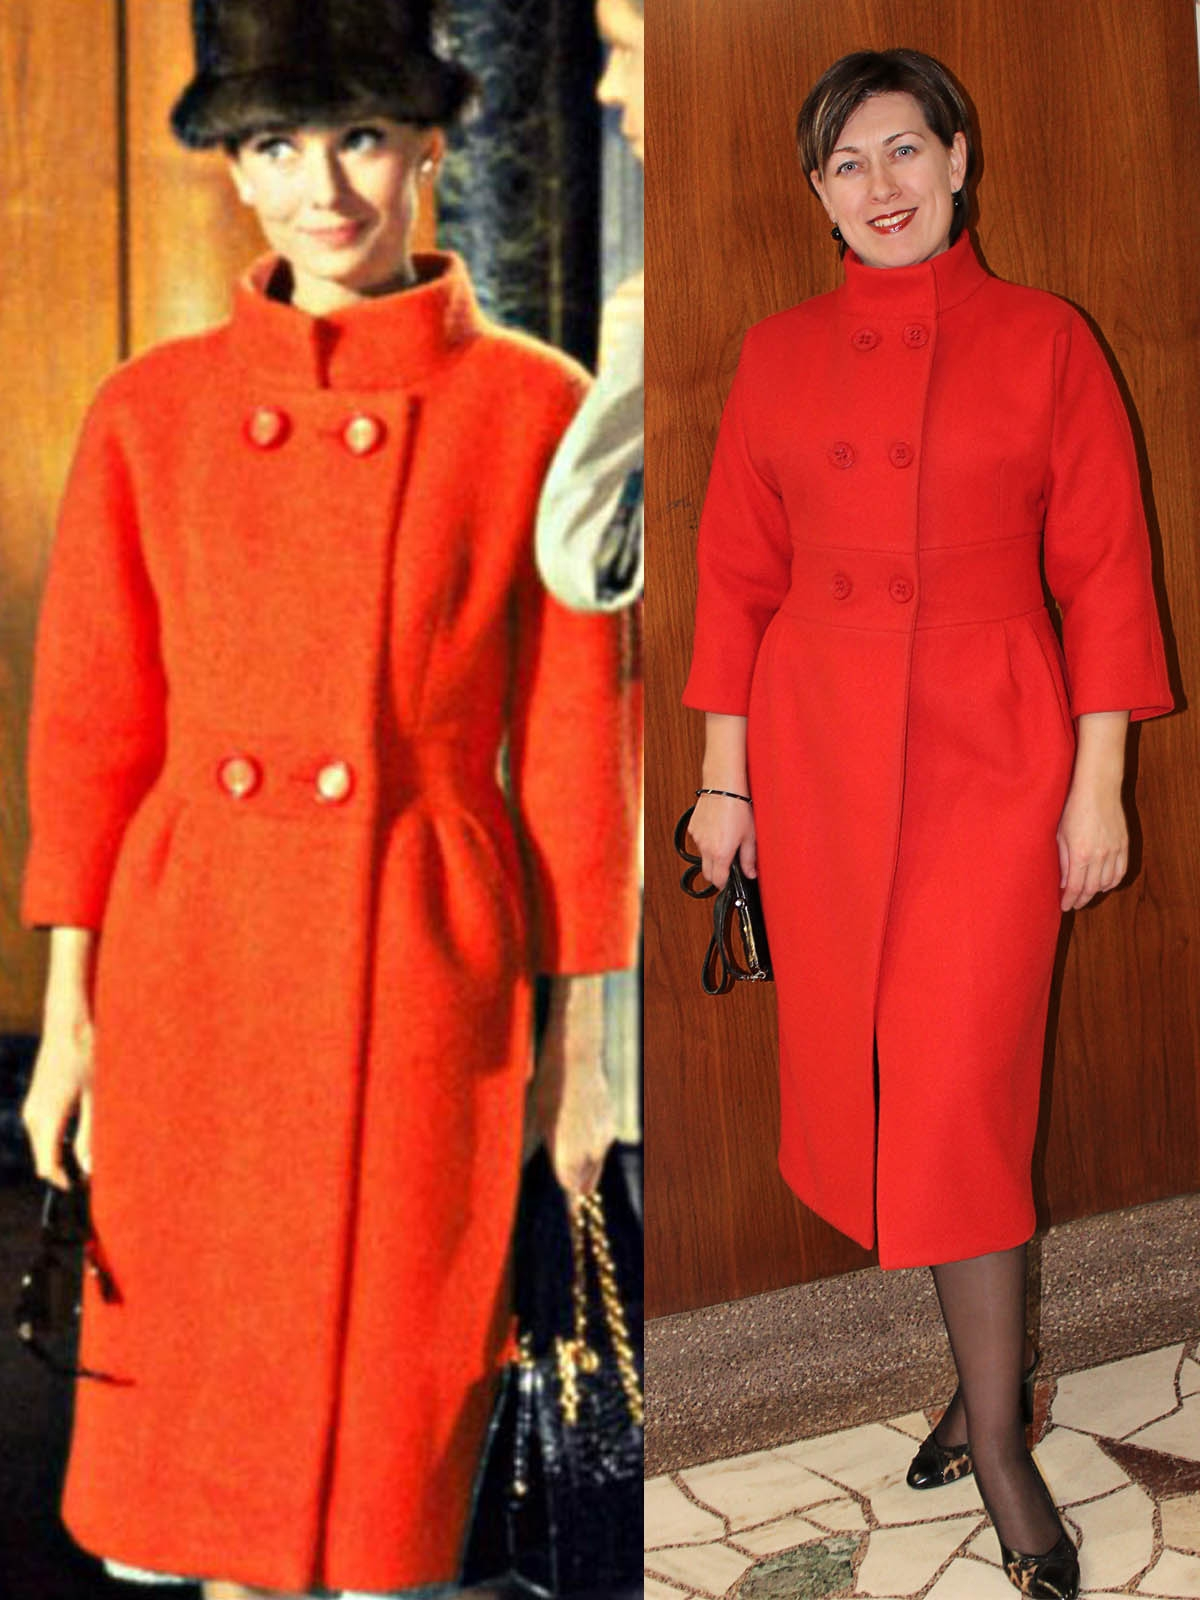 le manteau orange d'Audrey Hepburn.